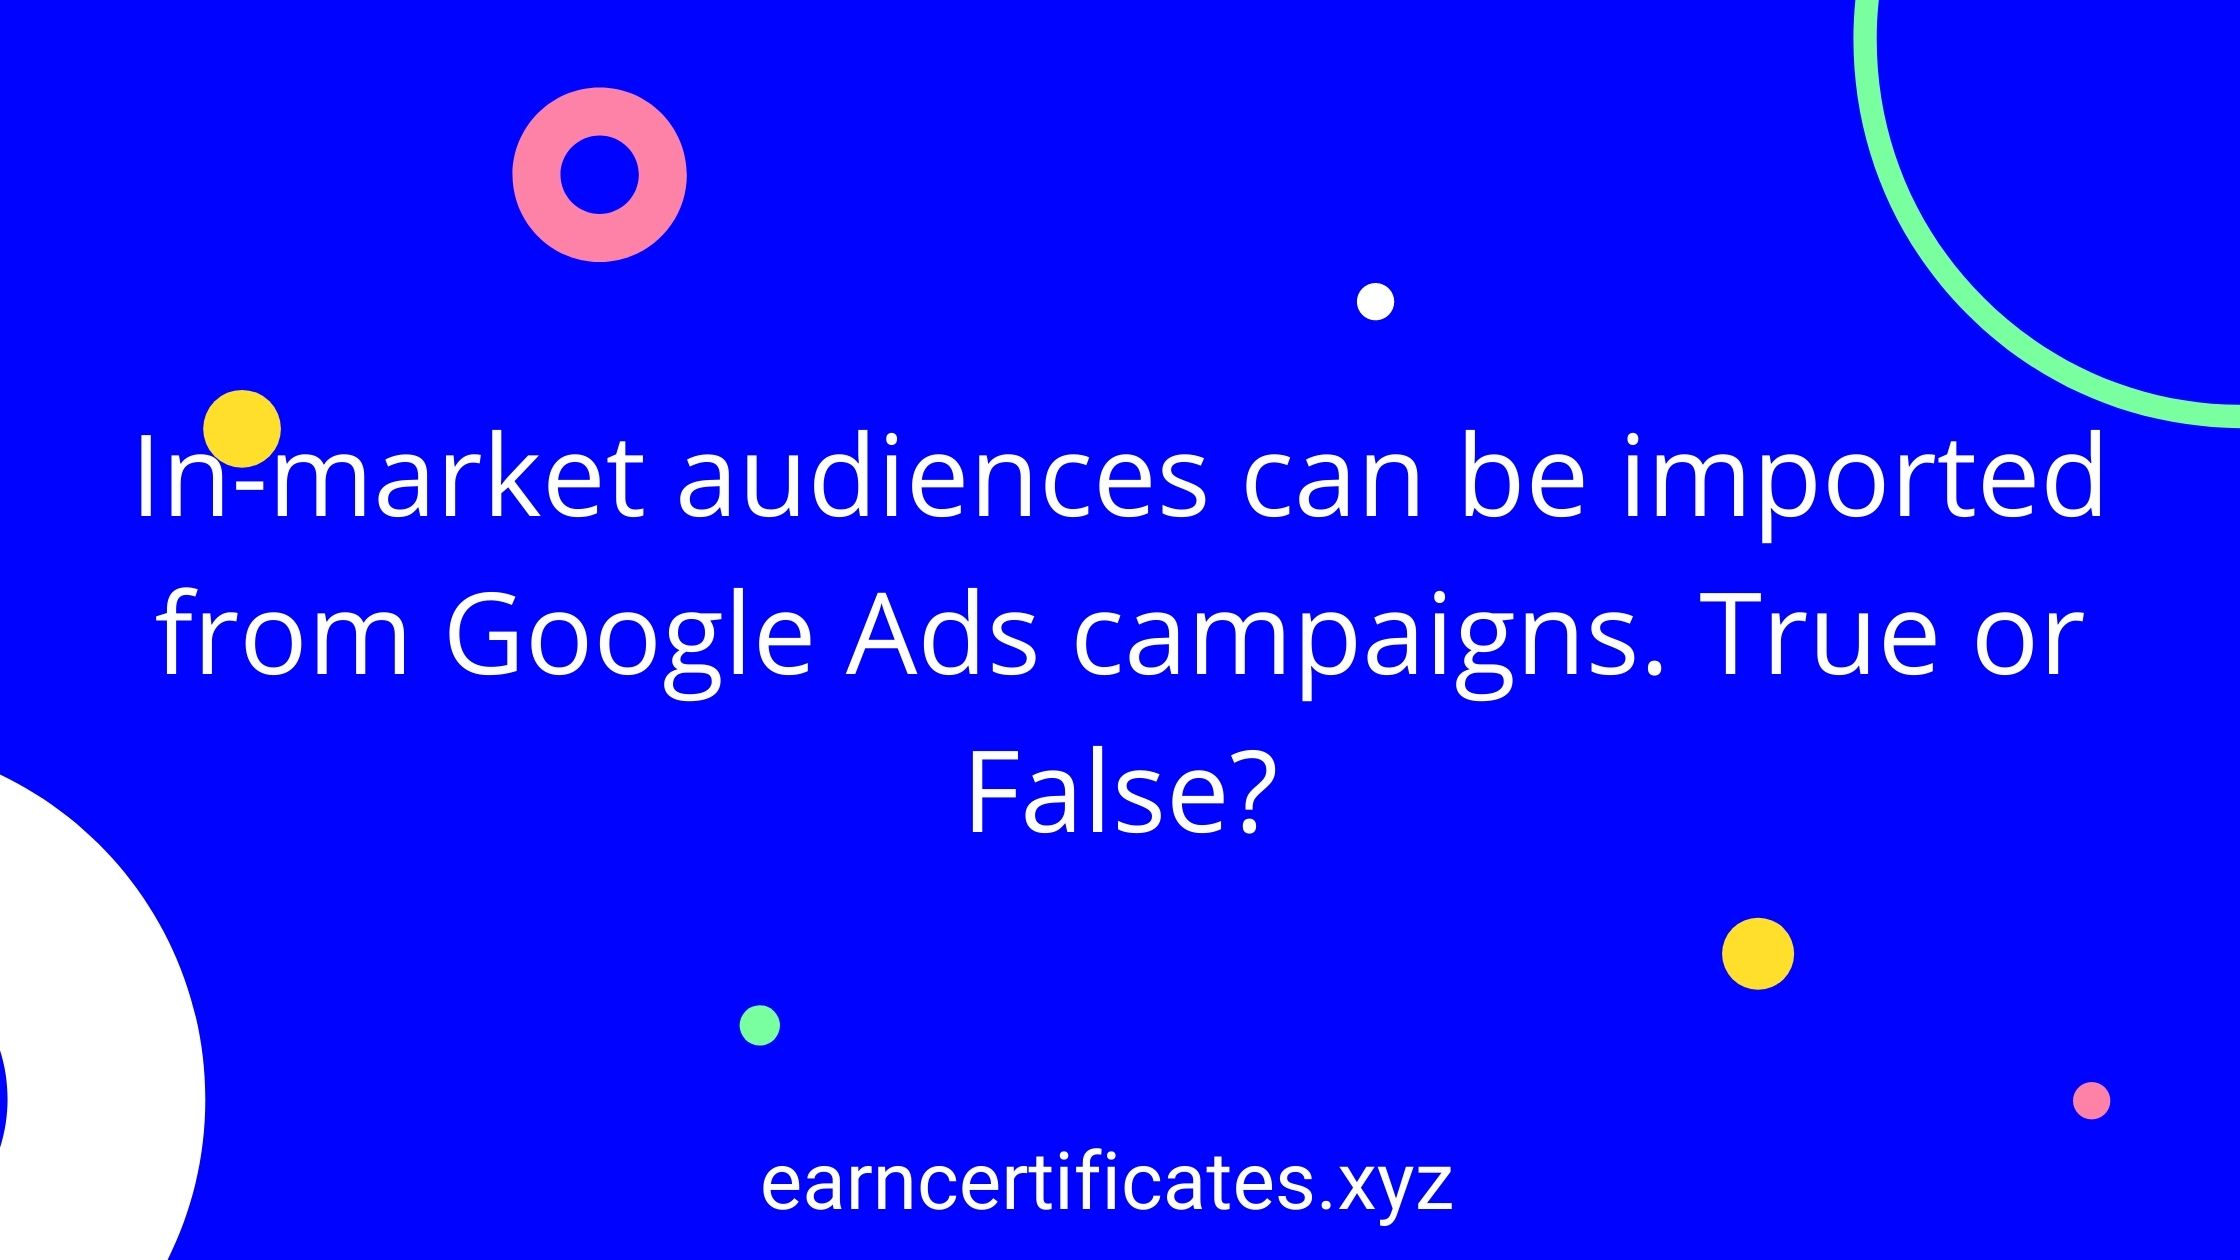 In-market audiences can be imported from Google Ads campaigns. True or False?